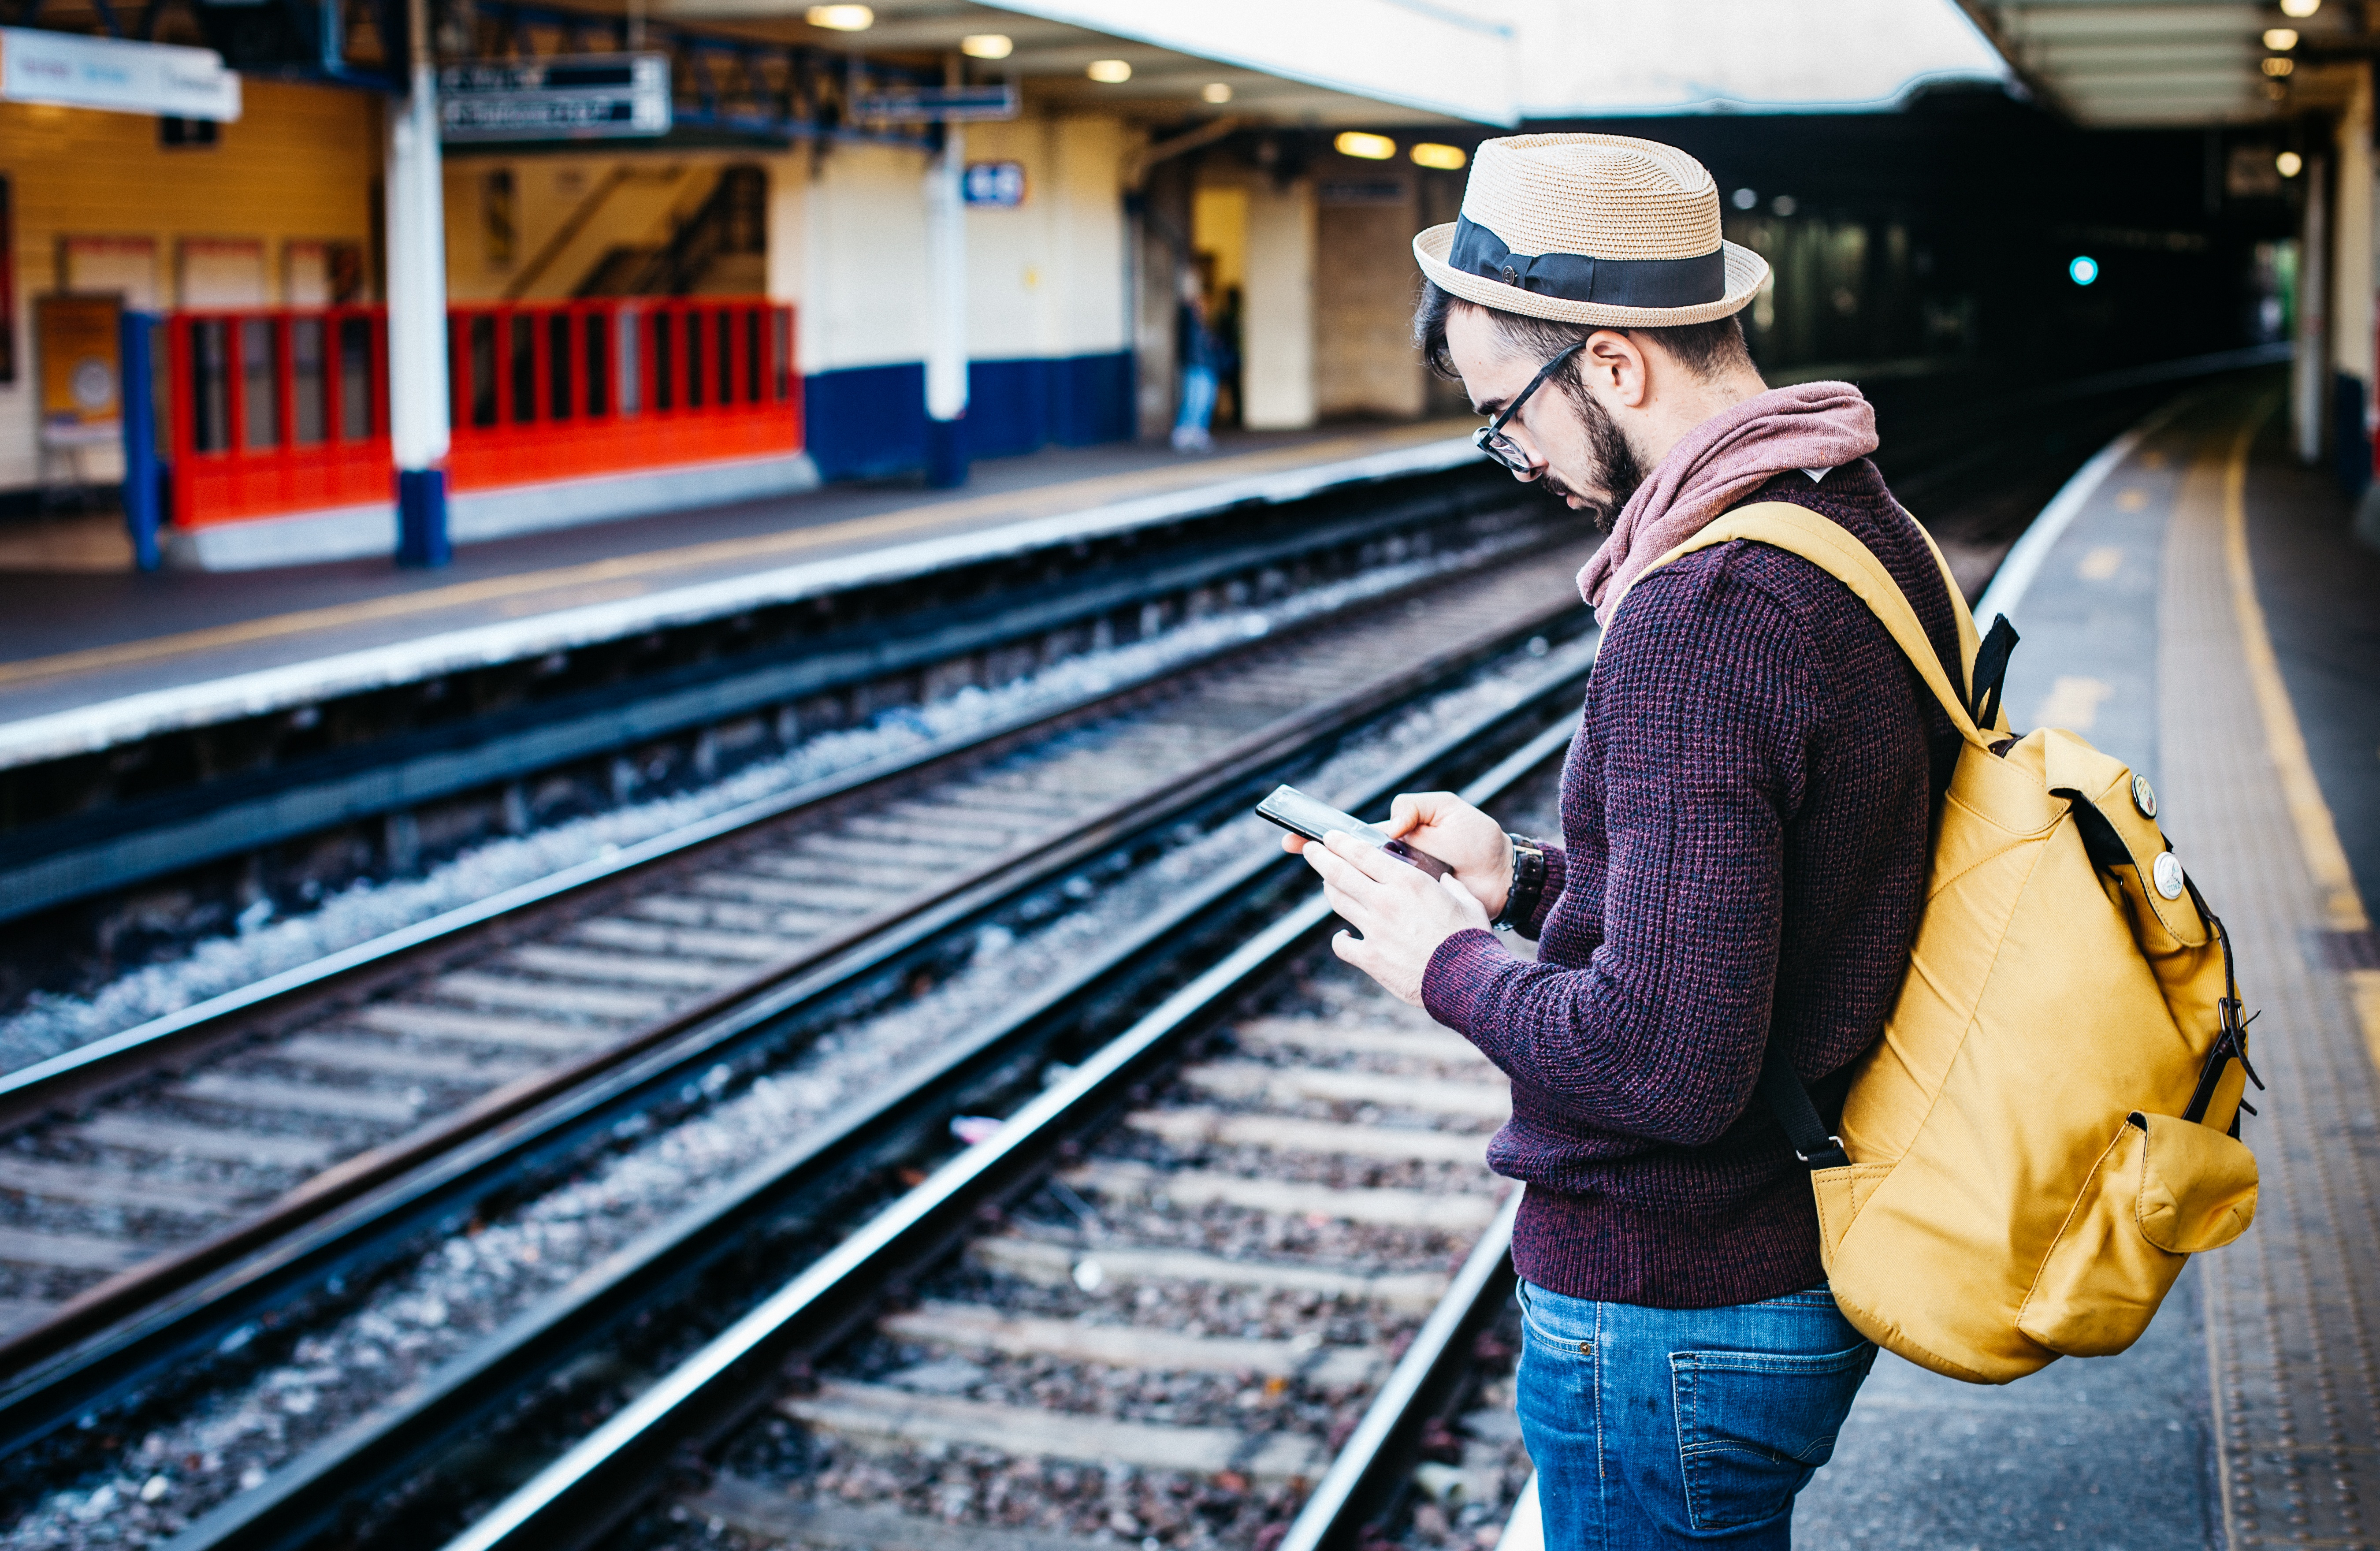 A person on their phone at a train station.